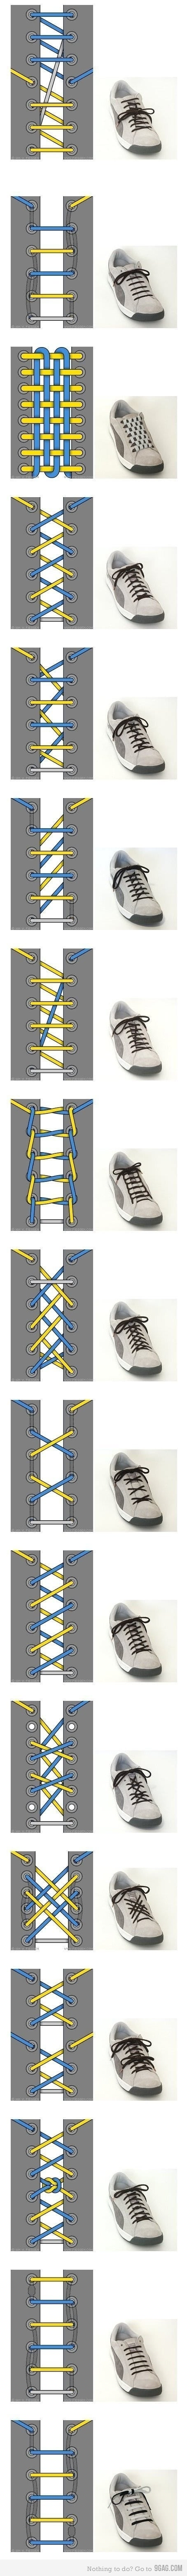 17-Ways-Tie-Your-Shoes